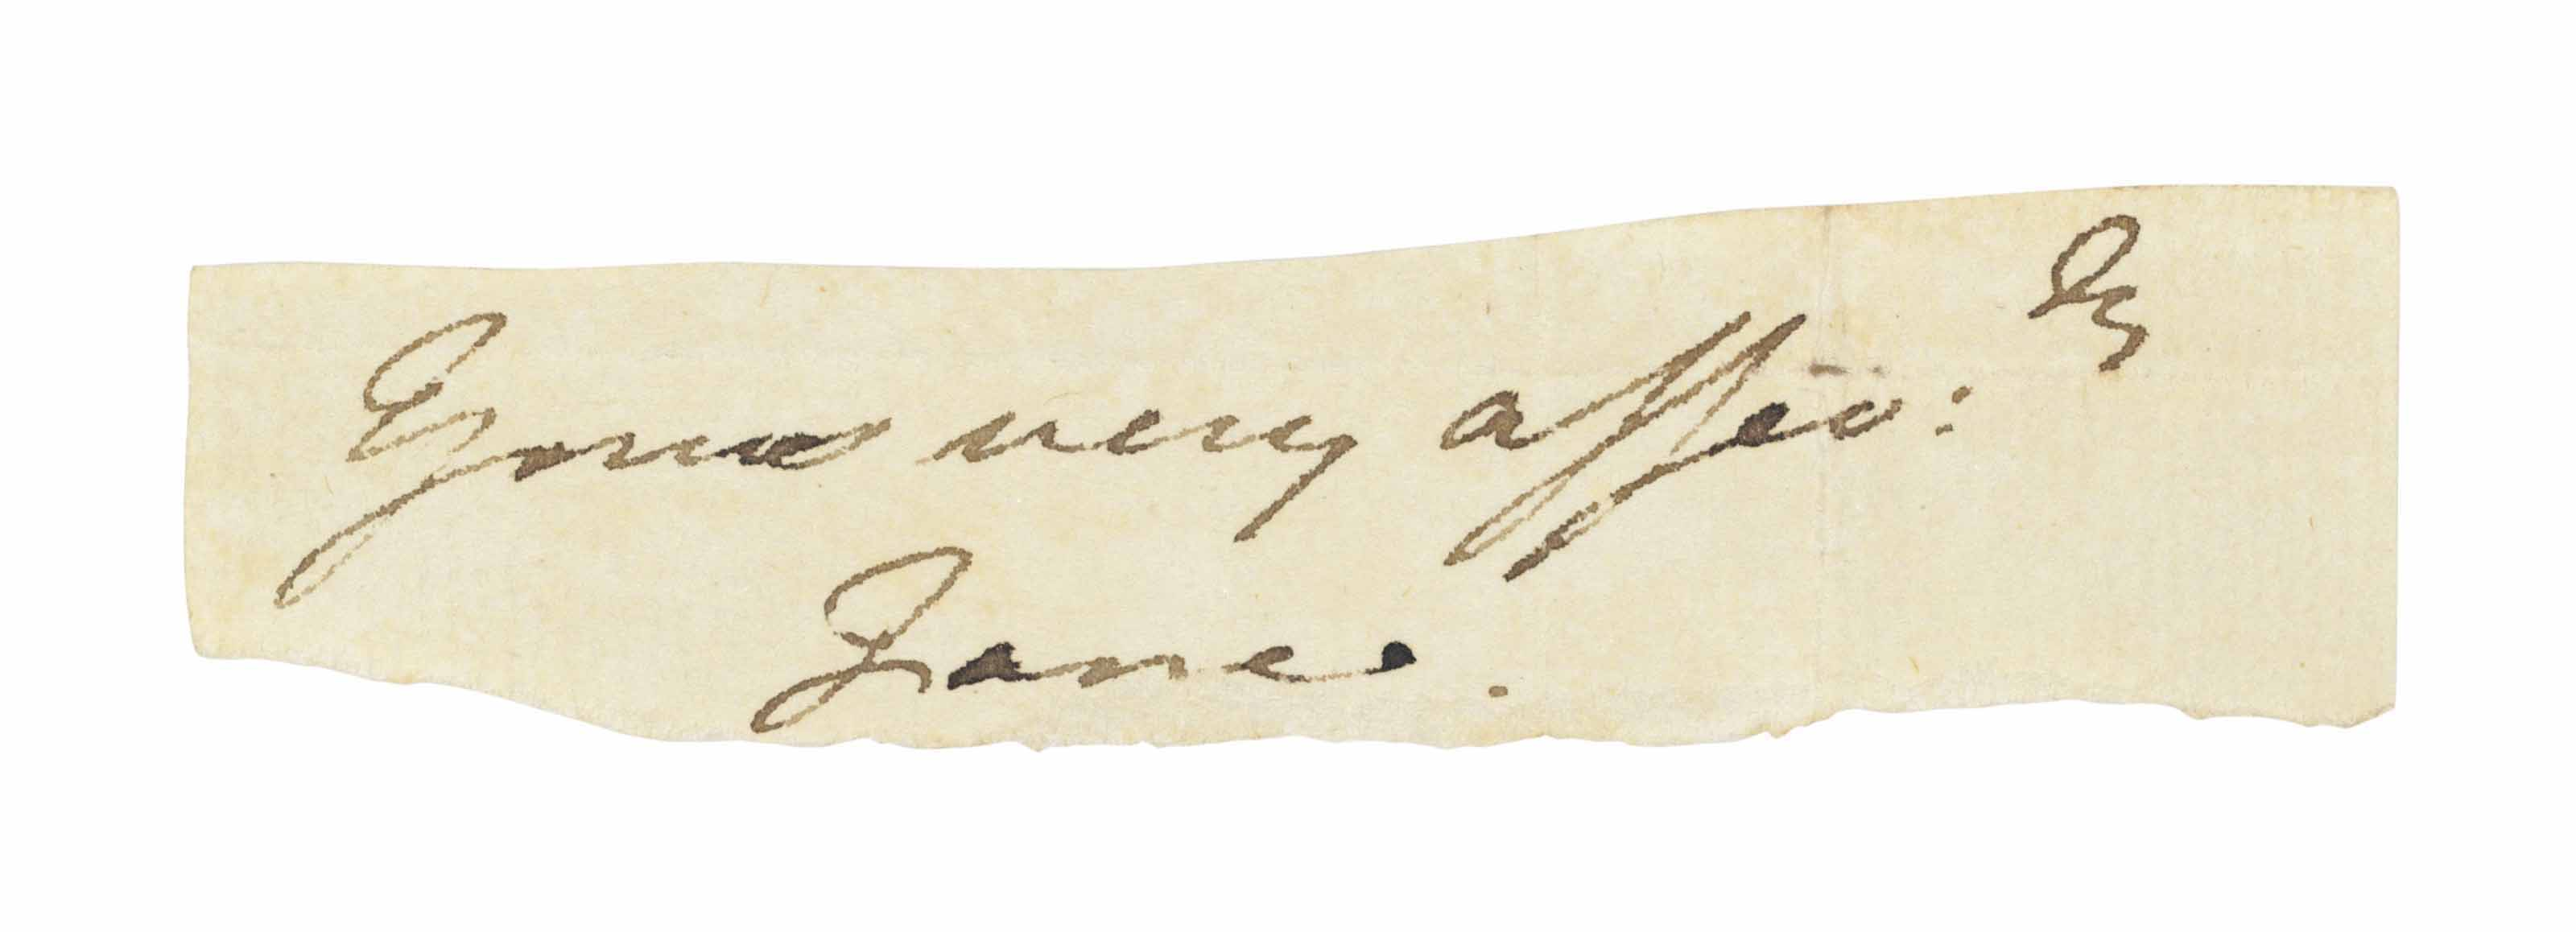 AUSTEN, Jane (1775-1817). Signature ('Yours very affec[tionate]ly, Jane'), cut from a letter, n.d.